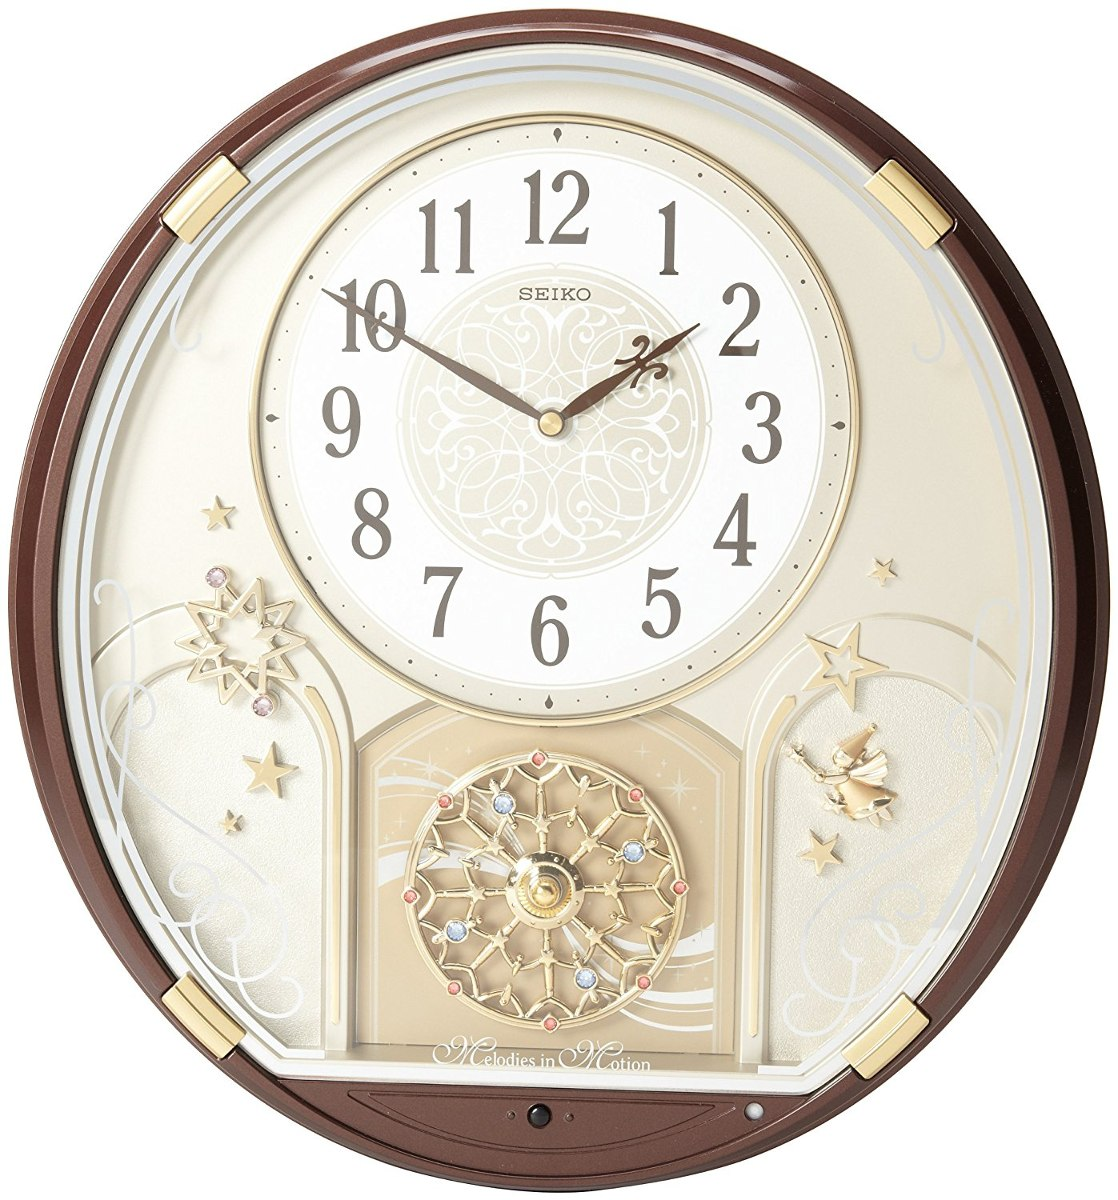 Seiko Qxm470brh Melody In Motion Clock 5 770 96 En Mercado Libre # Muebles Hattori Design